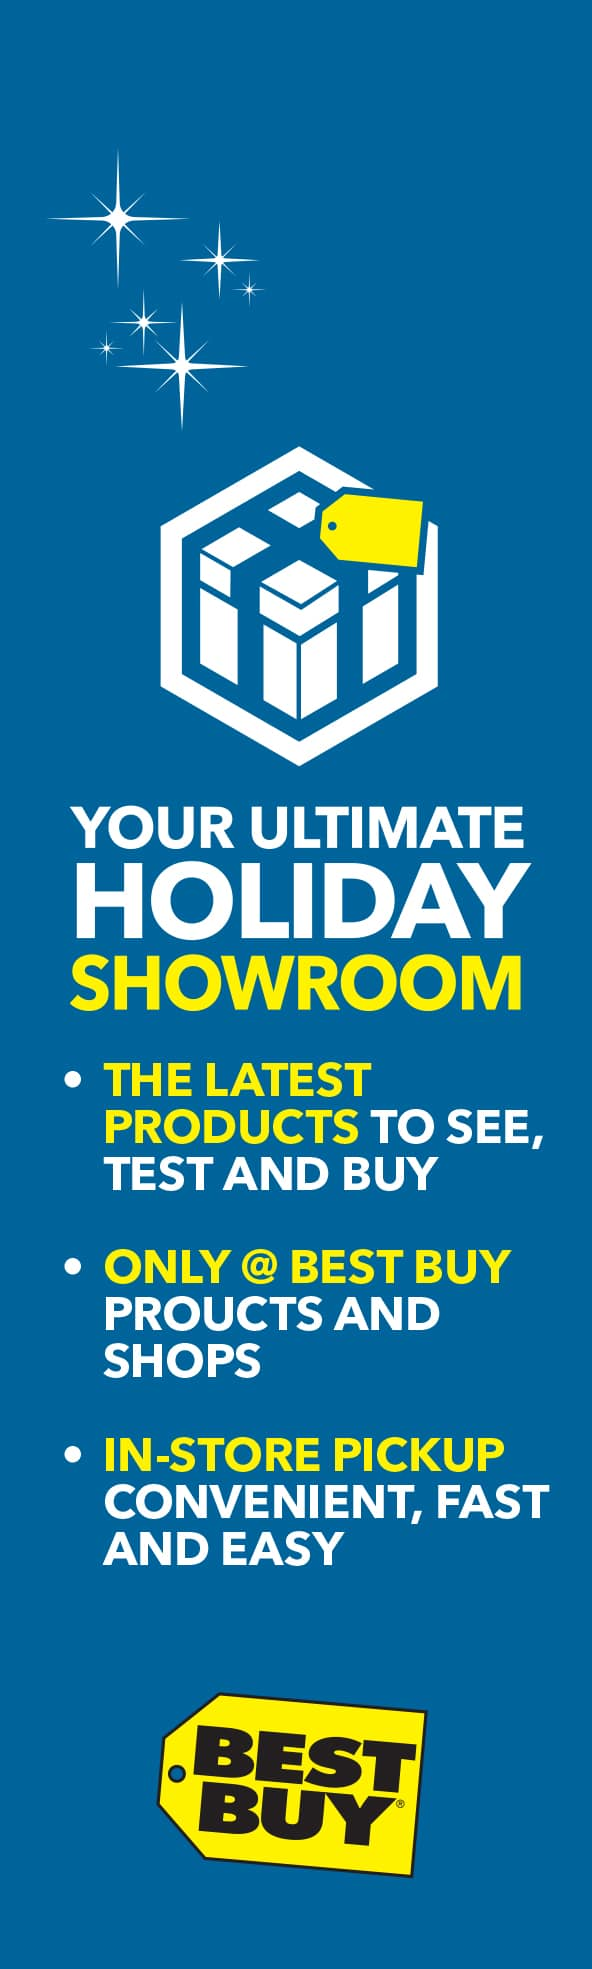 #bestbuy #sponsored #holidays